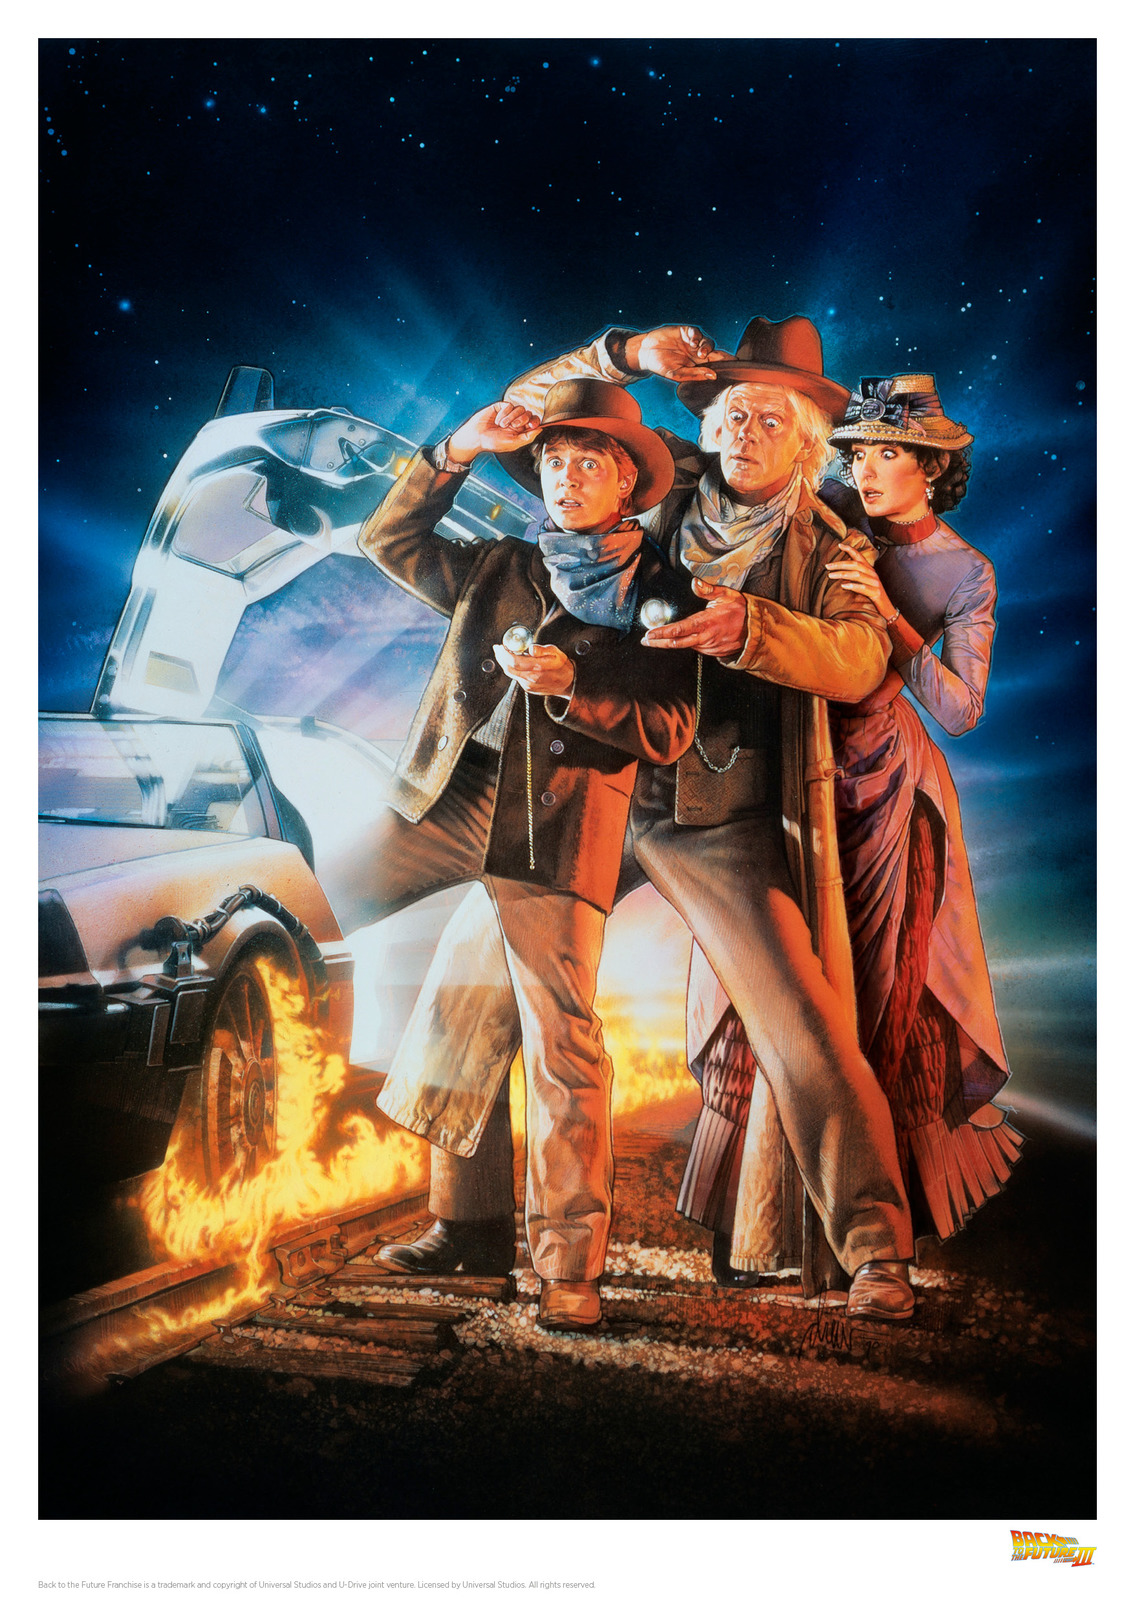 Back to the Future: Premium Art Print - 3rd Movie Poster image